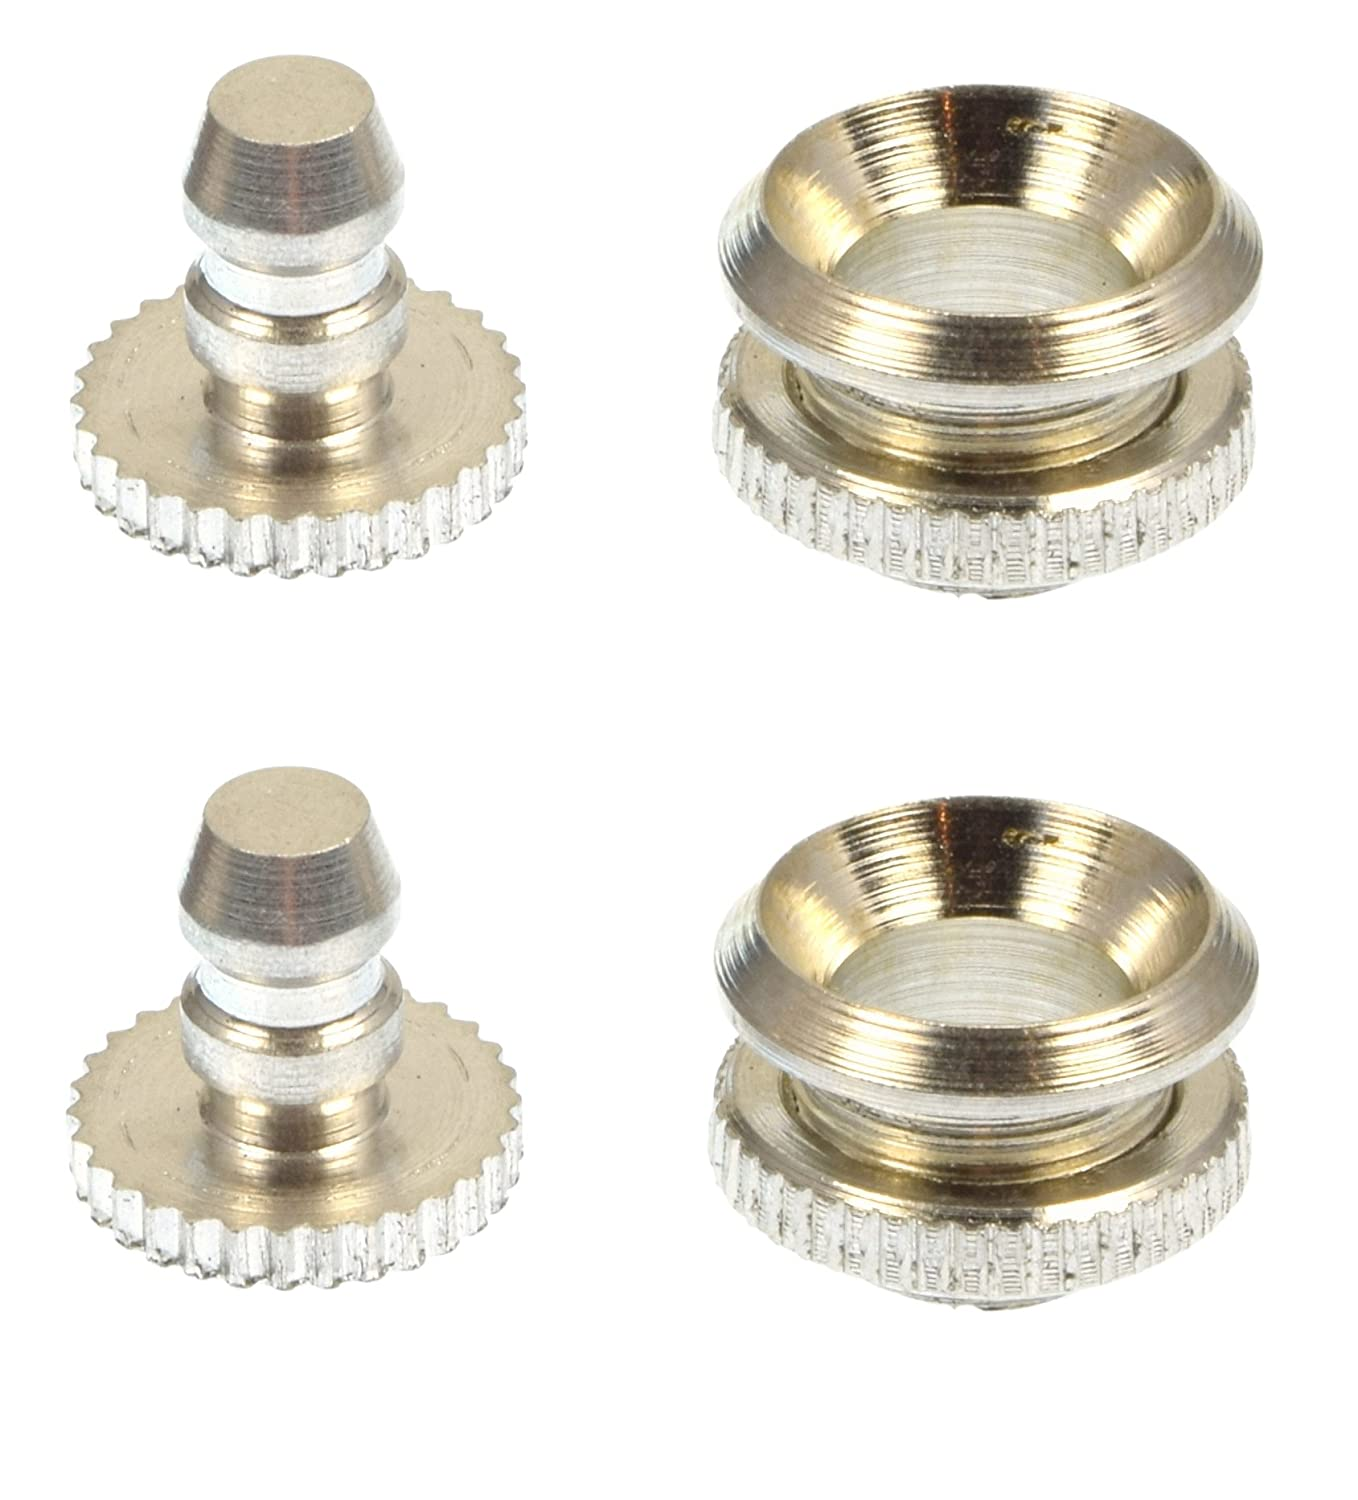 5916 Quincy Valve Retaining Nut And Screw Replacement